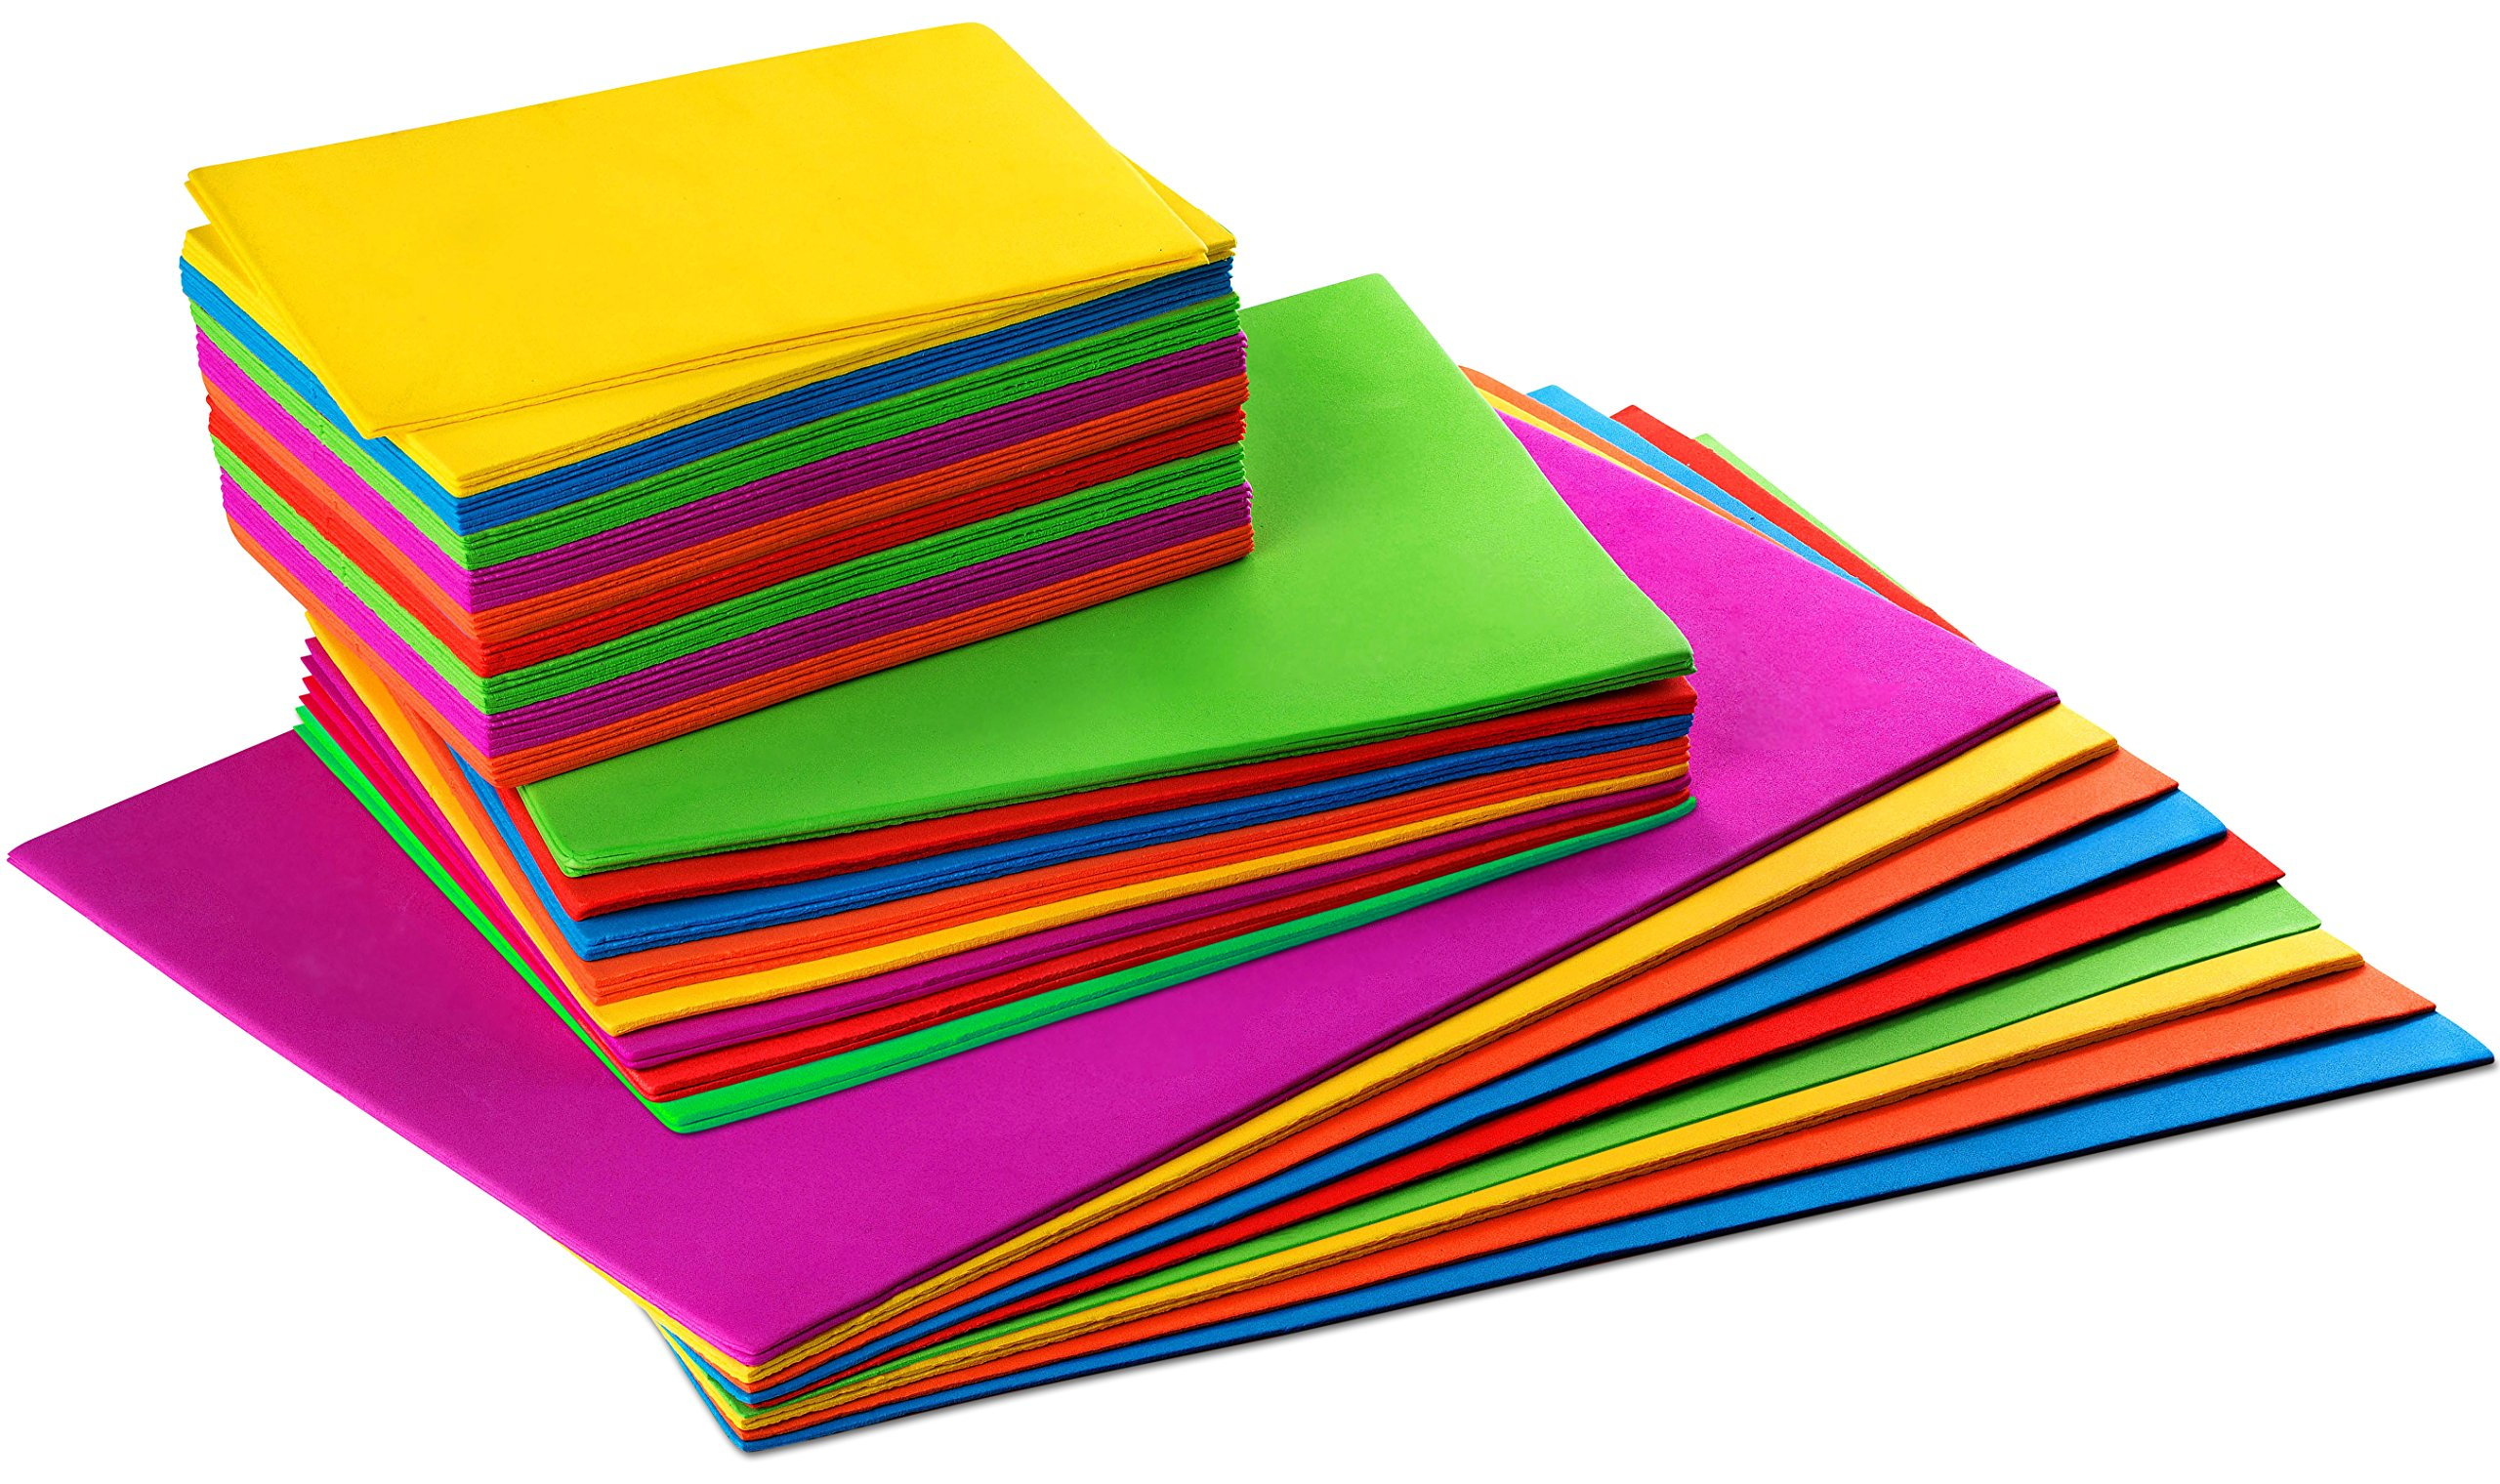 Set of 54 - Foam Craft Sheets, Kids Arts and Crafts Foam Paper, Rainbow Colors, 3 Sizes